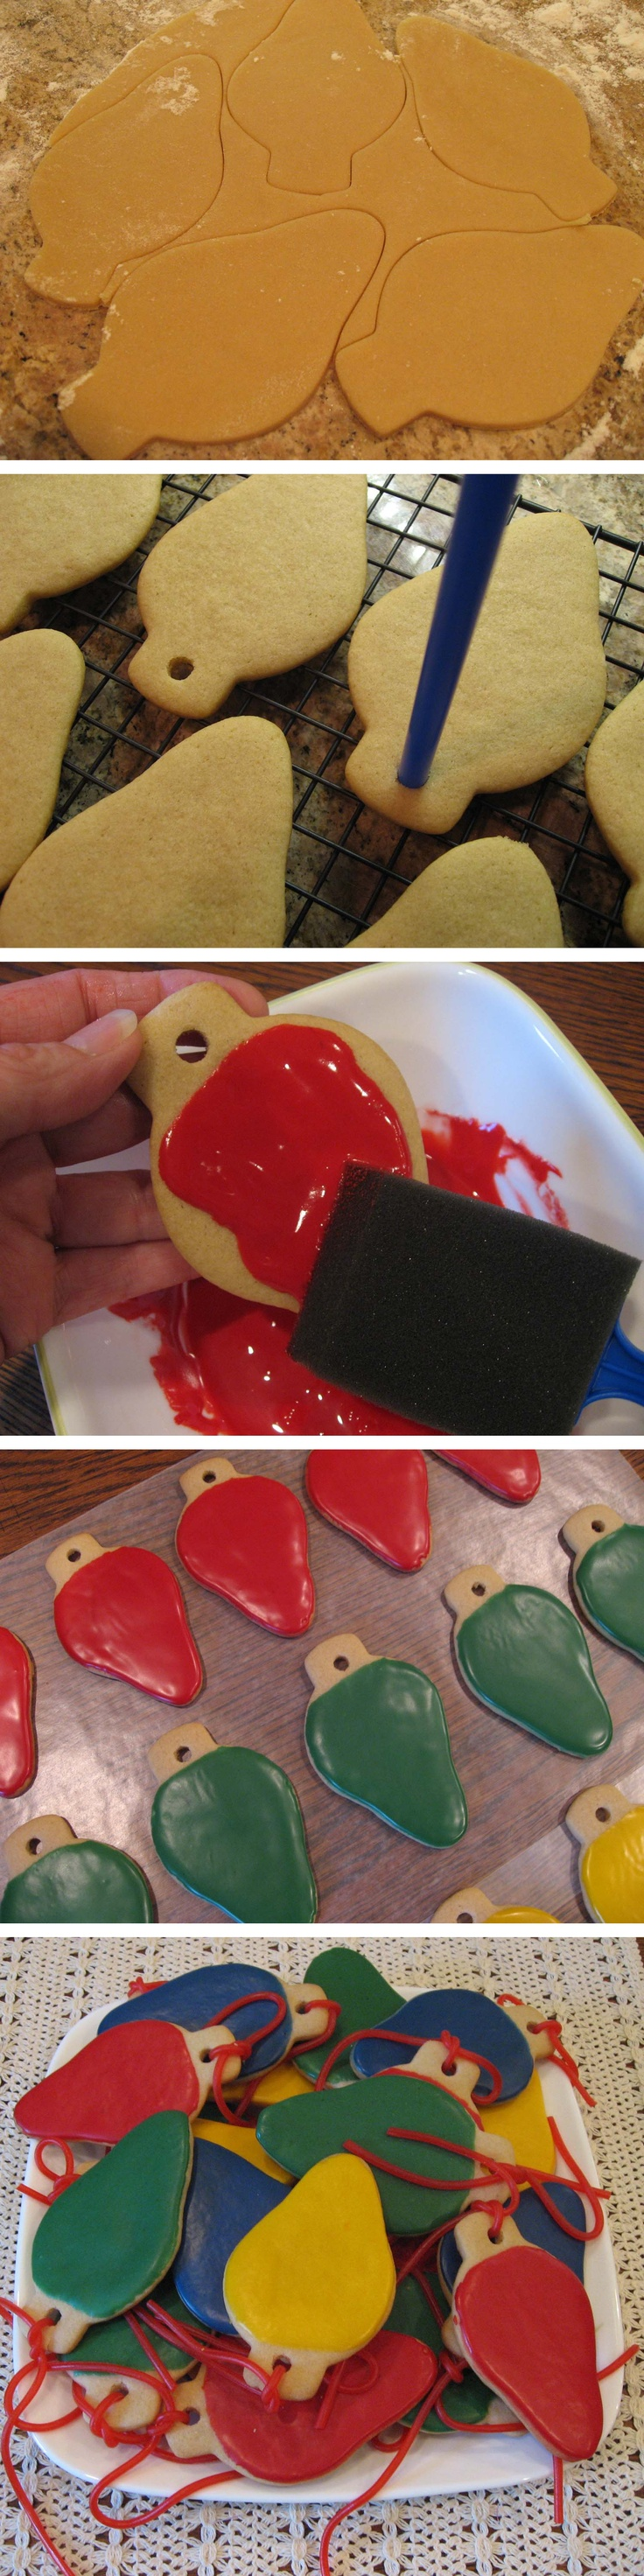 Cookies, Licorice Hole, Christmas Lights, Create Licorice, Lights ...